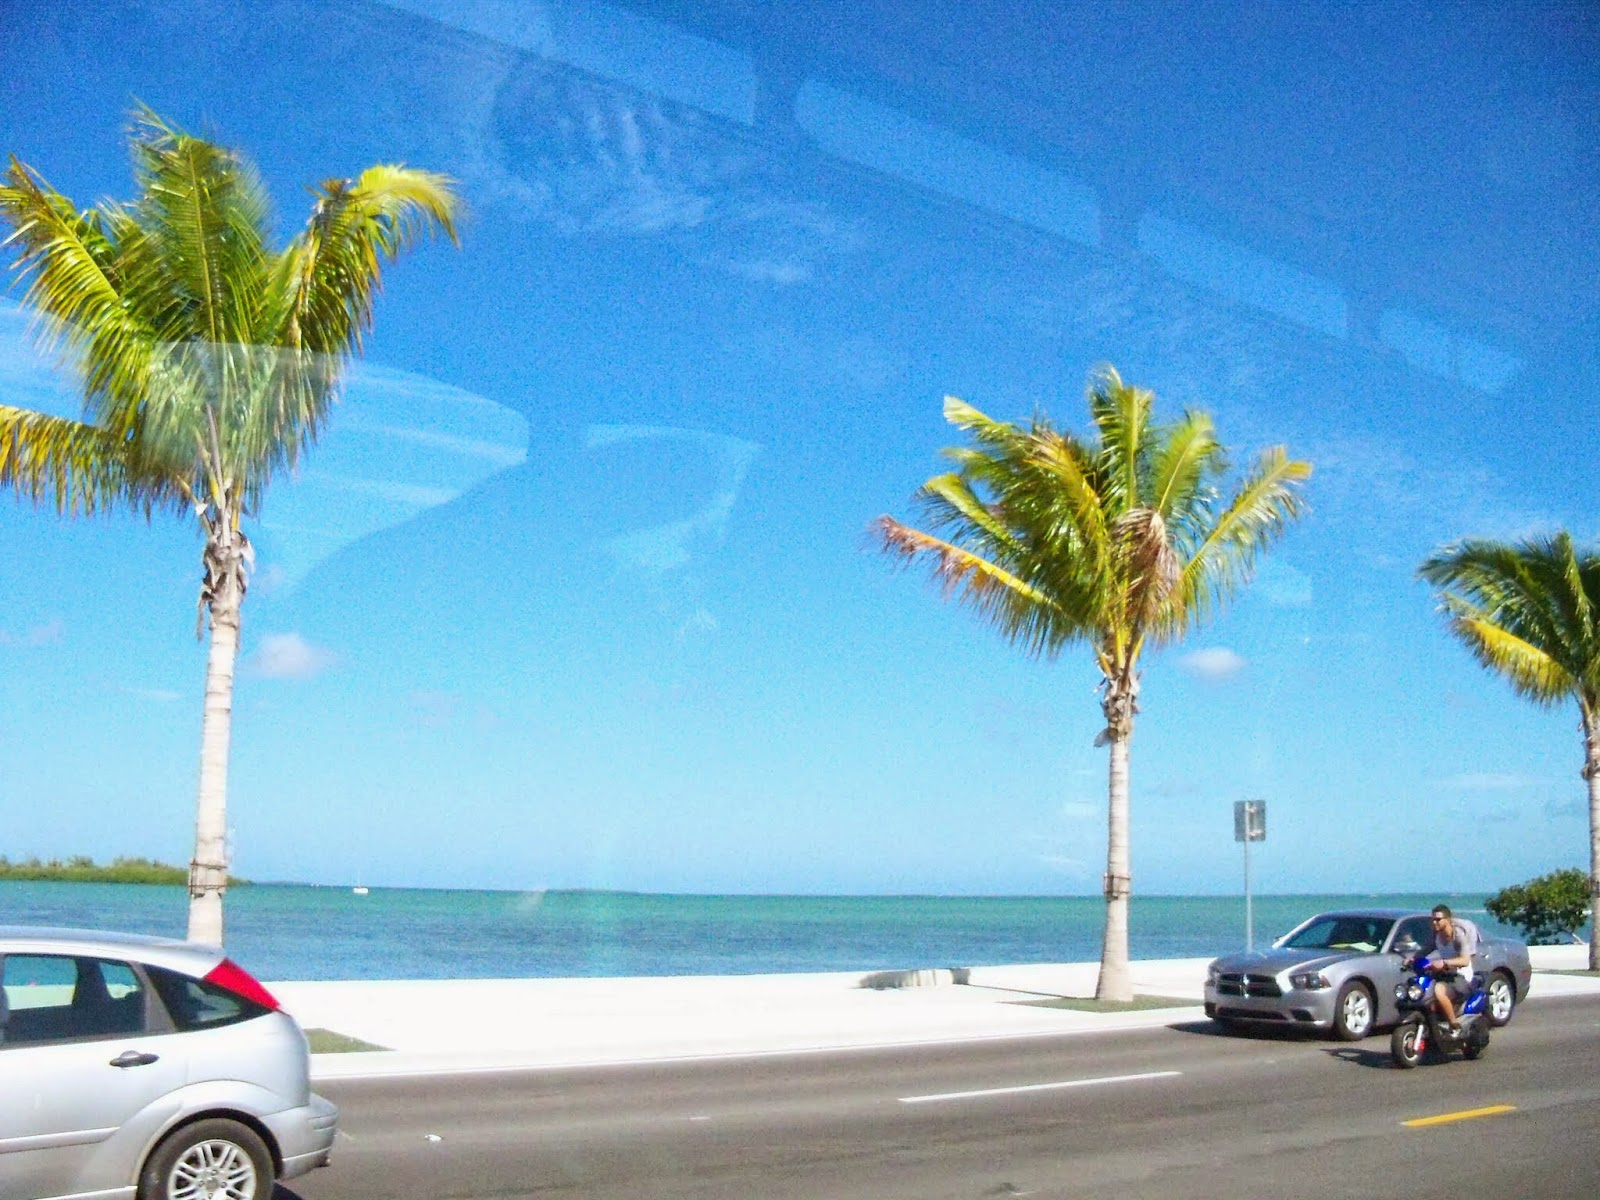 Key West Vacation - 116_5773.JPG